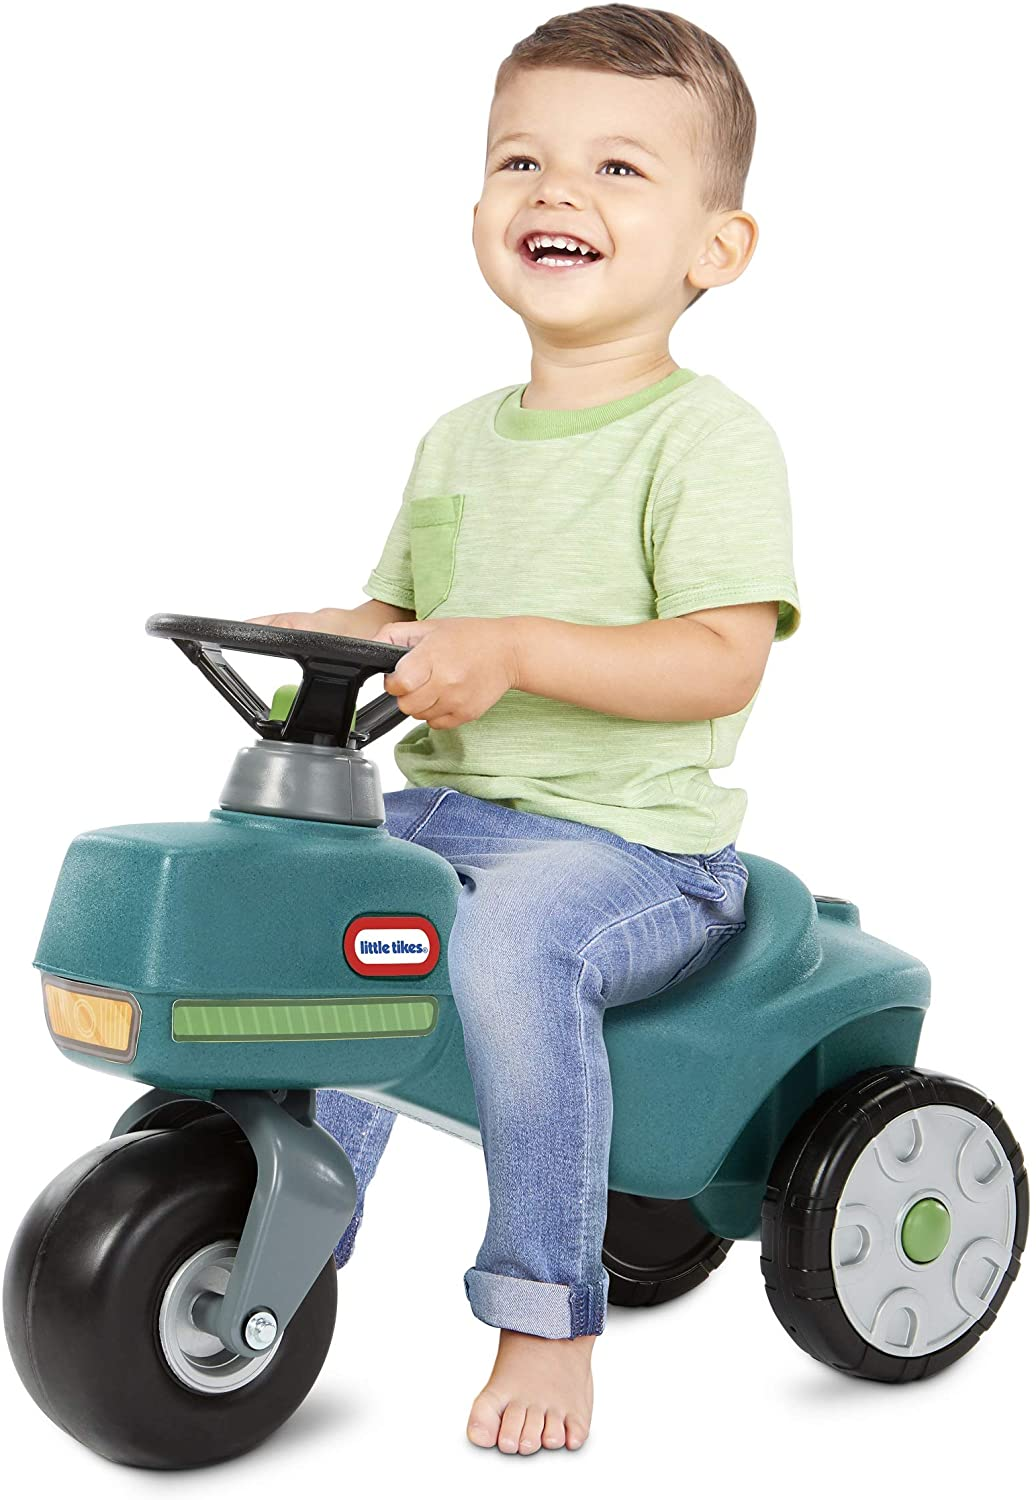 Little Tikes Go Green! Ride-On Tractor for Kids 1.5 to 3 Years | Recycled Plastic